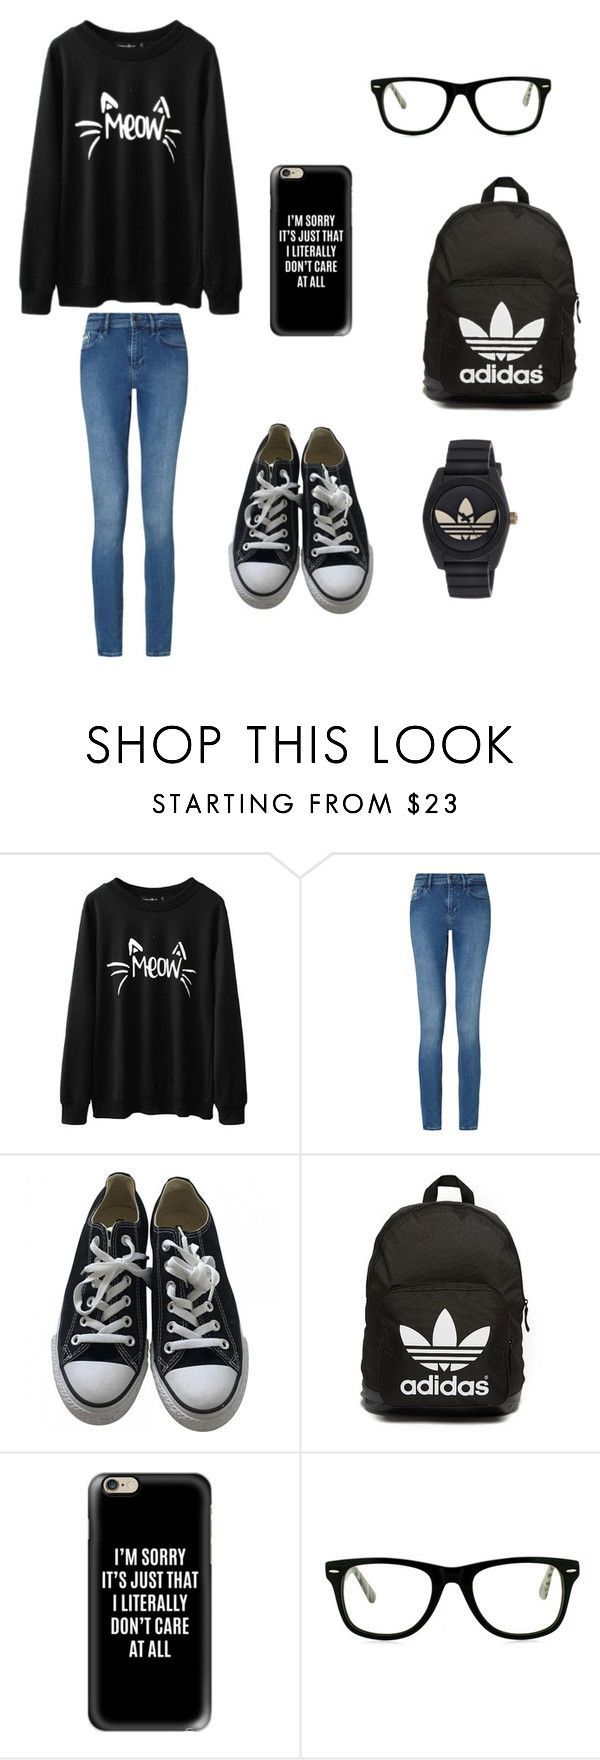 """BFFs outfits for school: @annabeth999"" by holly-hills ❤ liked on Polyvore featuring Calvin Klein, Converse, adidas Originals, Casetify, Muse and adidas"